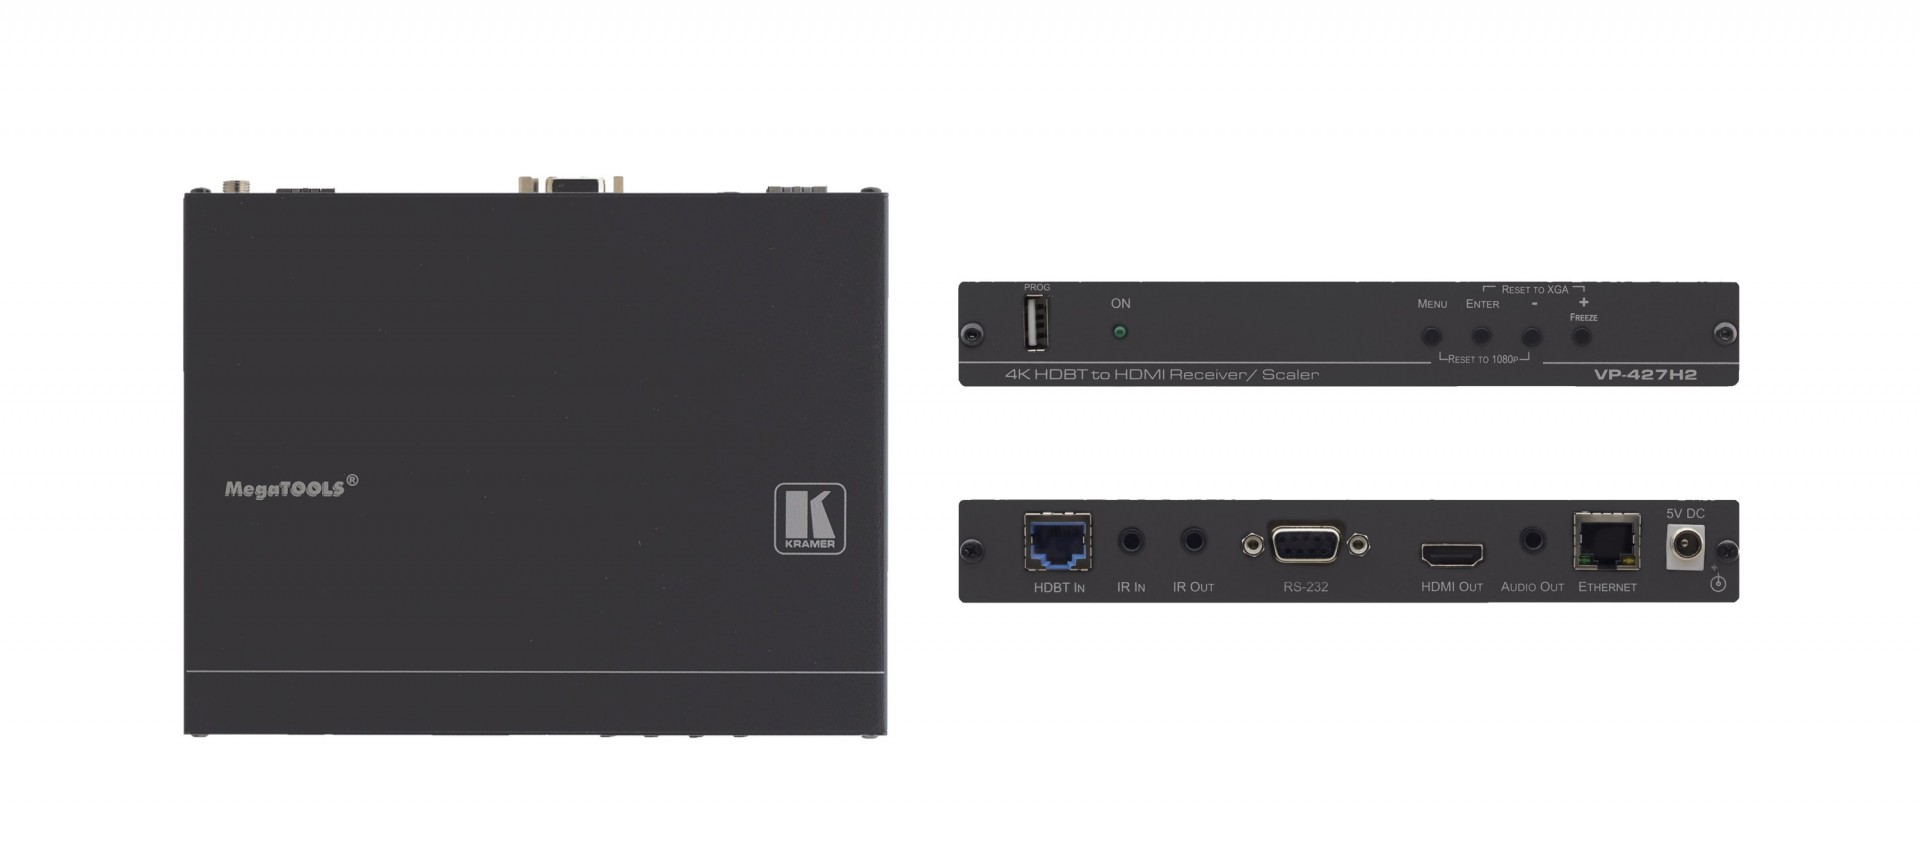 Kramer VP-427H2 4K60 4:4:4 HDMI HDCP 2.2 Receiver/Scaler over Extended–Reach HDBaseT